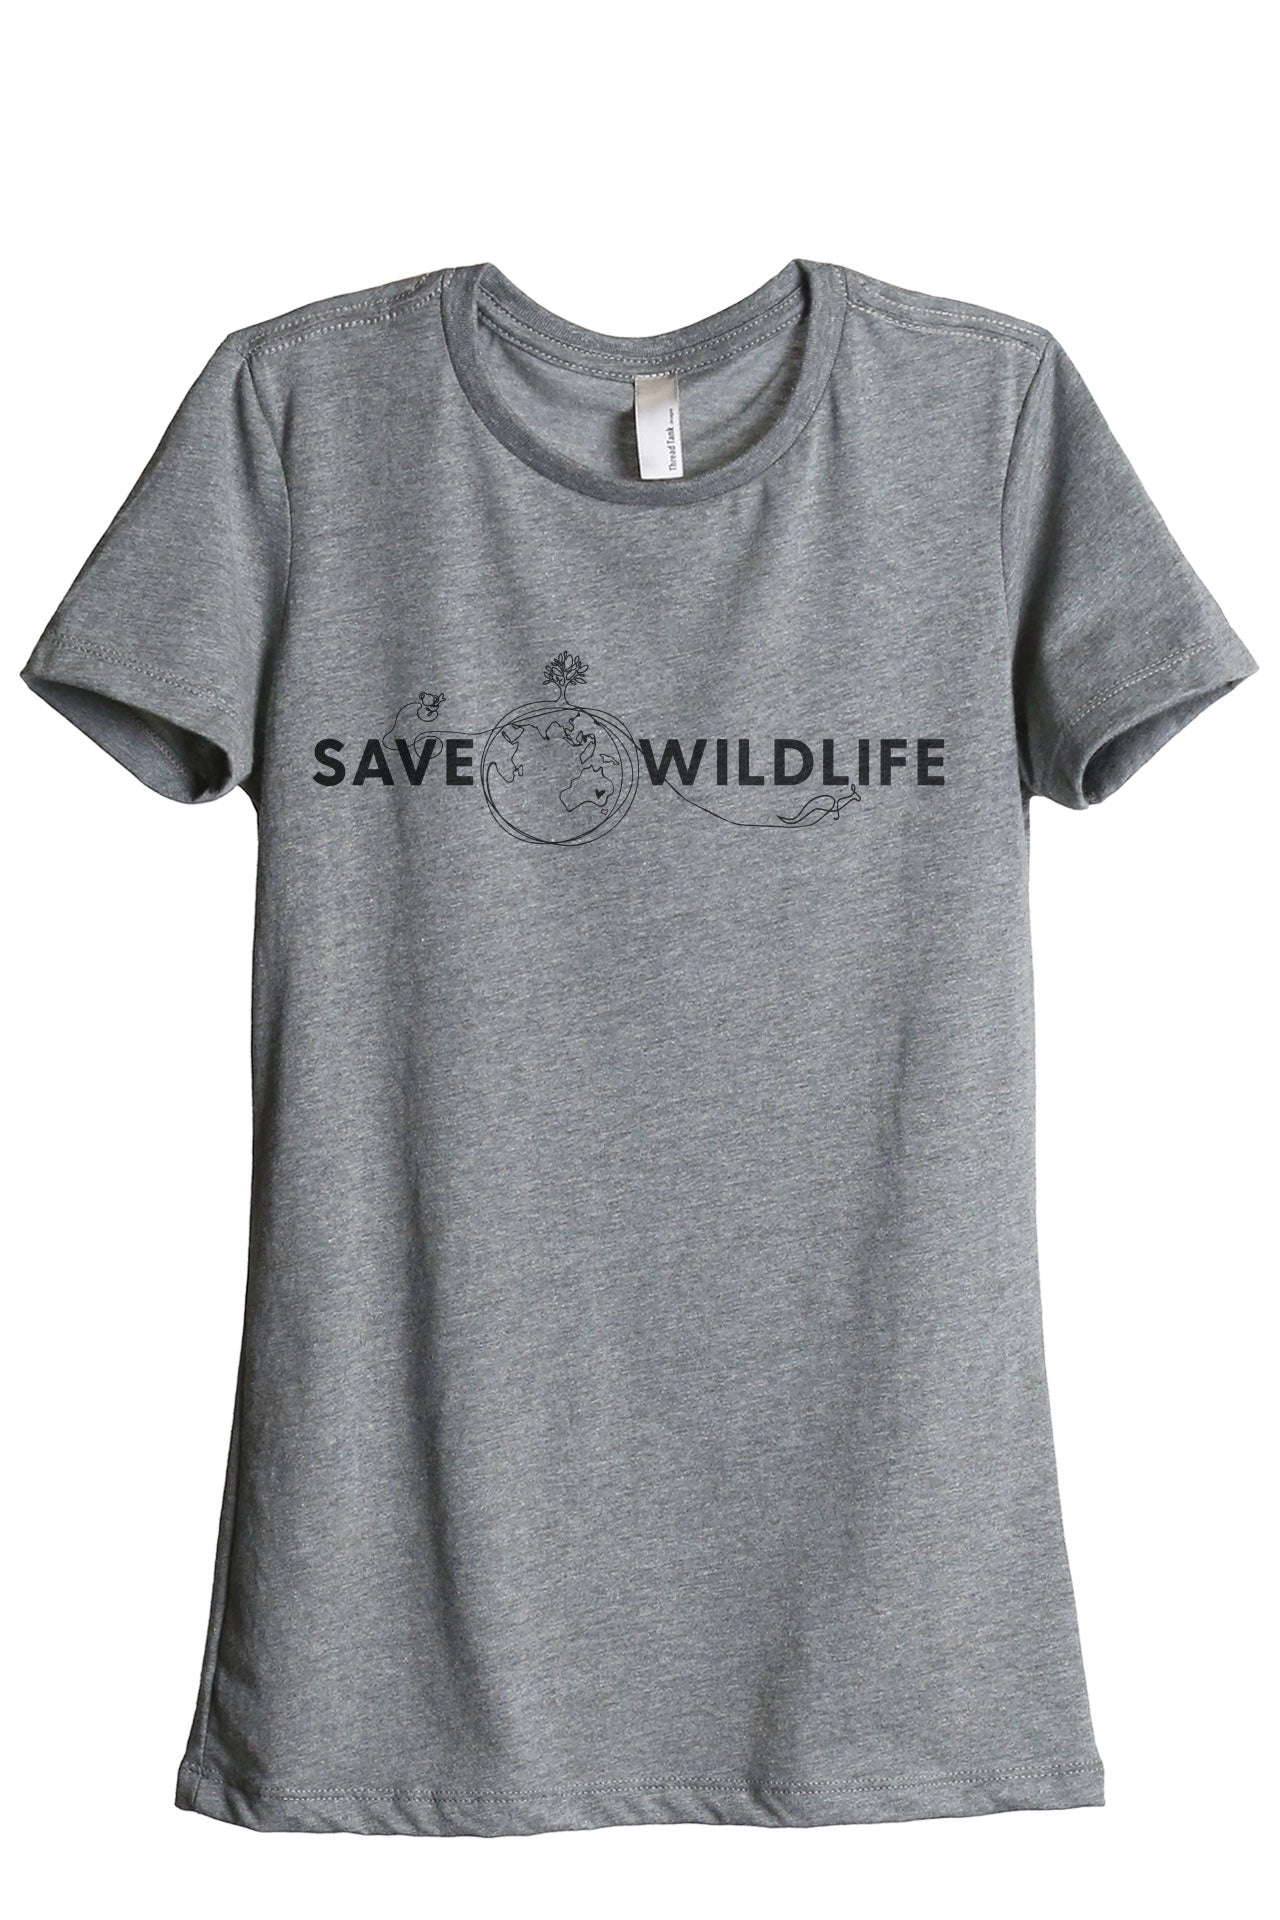 Save Wildlife Women's Relaxed Crewneck T-Shirt Top Tee Heather Grey